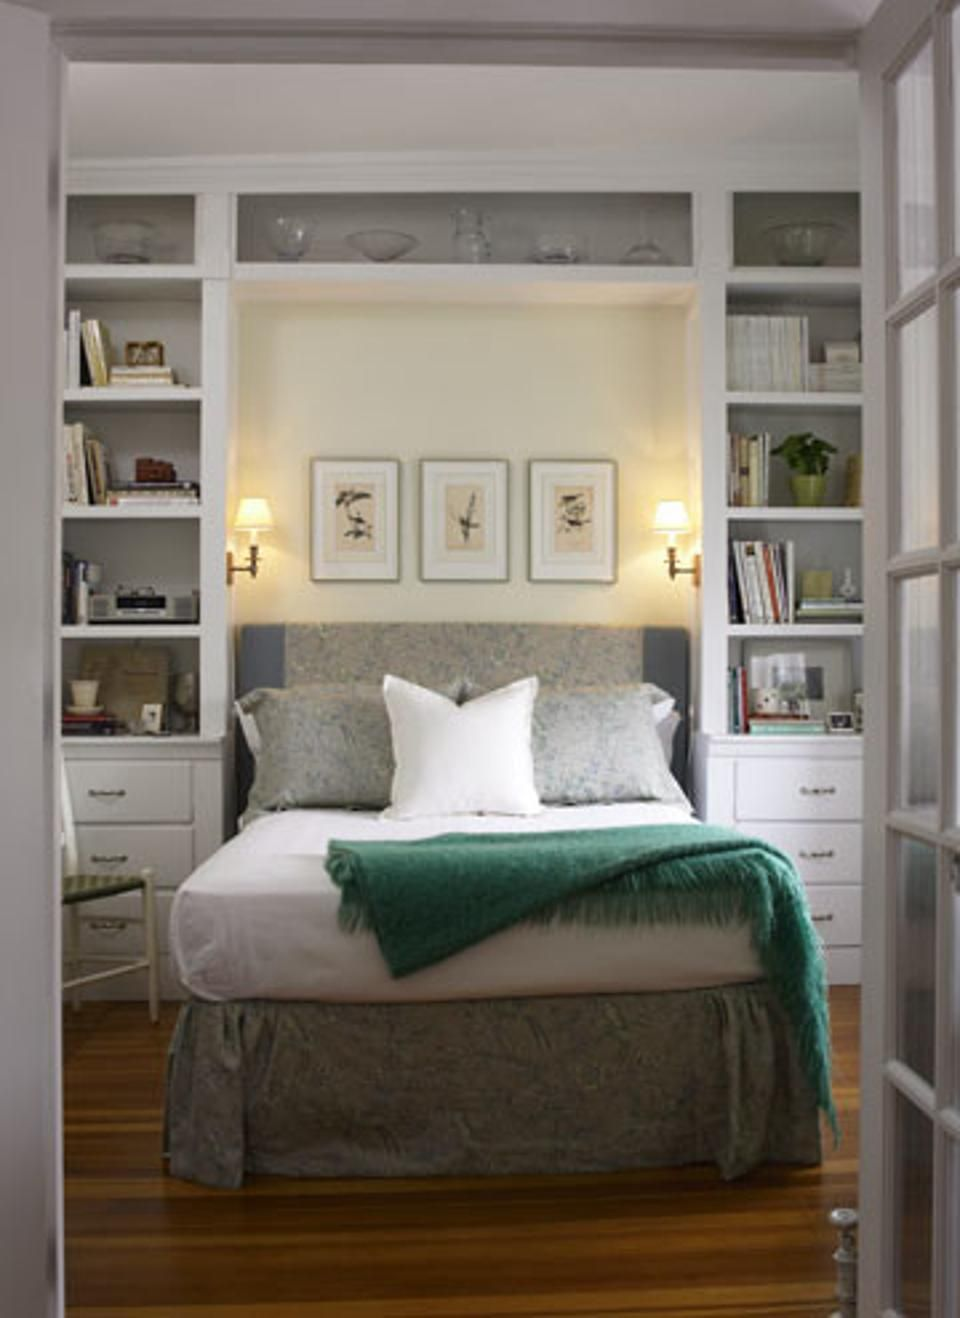 10 Tips To Make A Small Bedroom Look Great   For the Home     Turn a compact space into a brilliant boudoir with these decorating   storage and layout techniques More